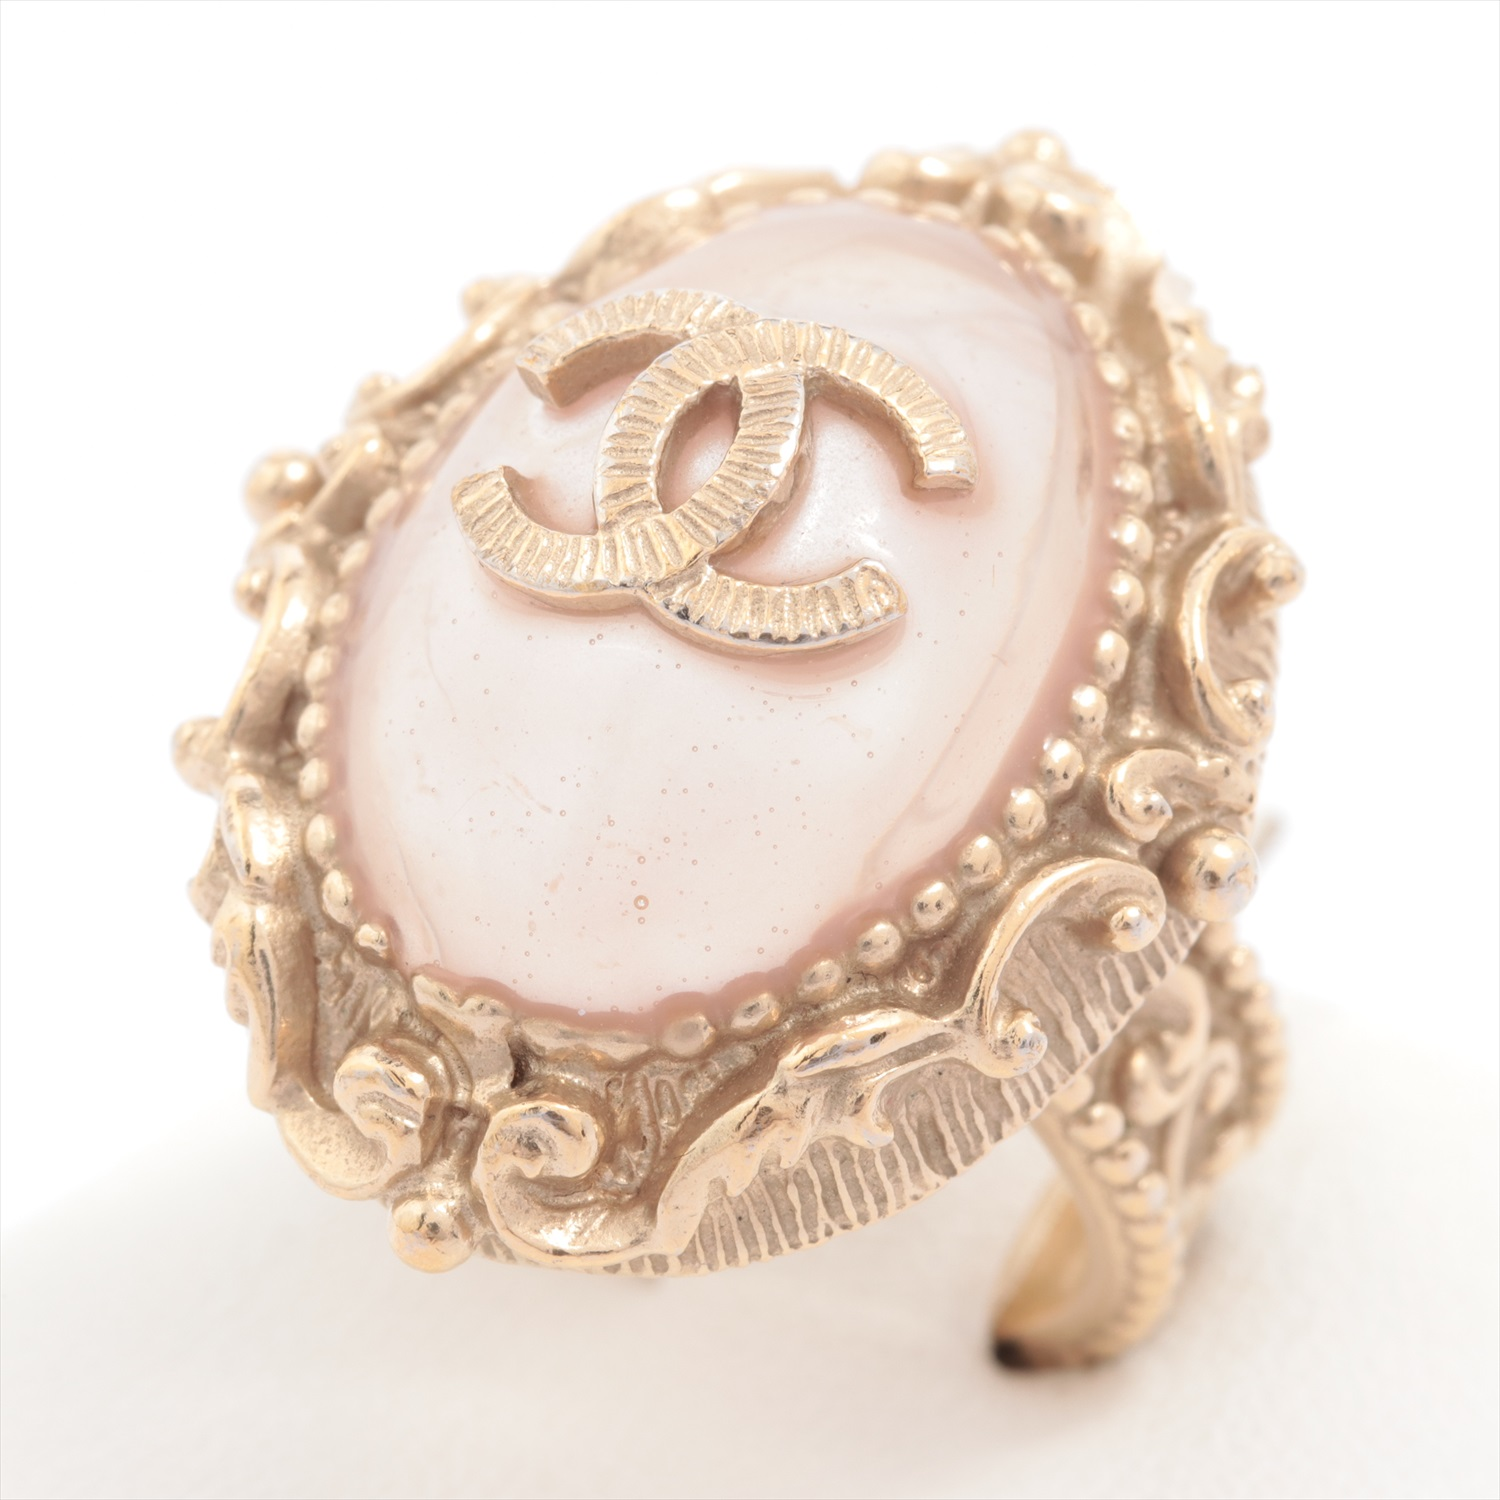 [Used goods] Chanel ring No. 10 metal material gold B13C pink color stone